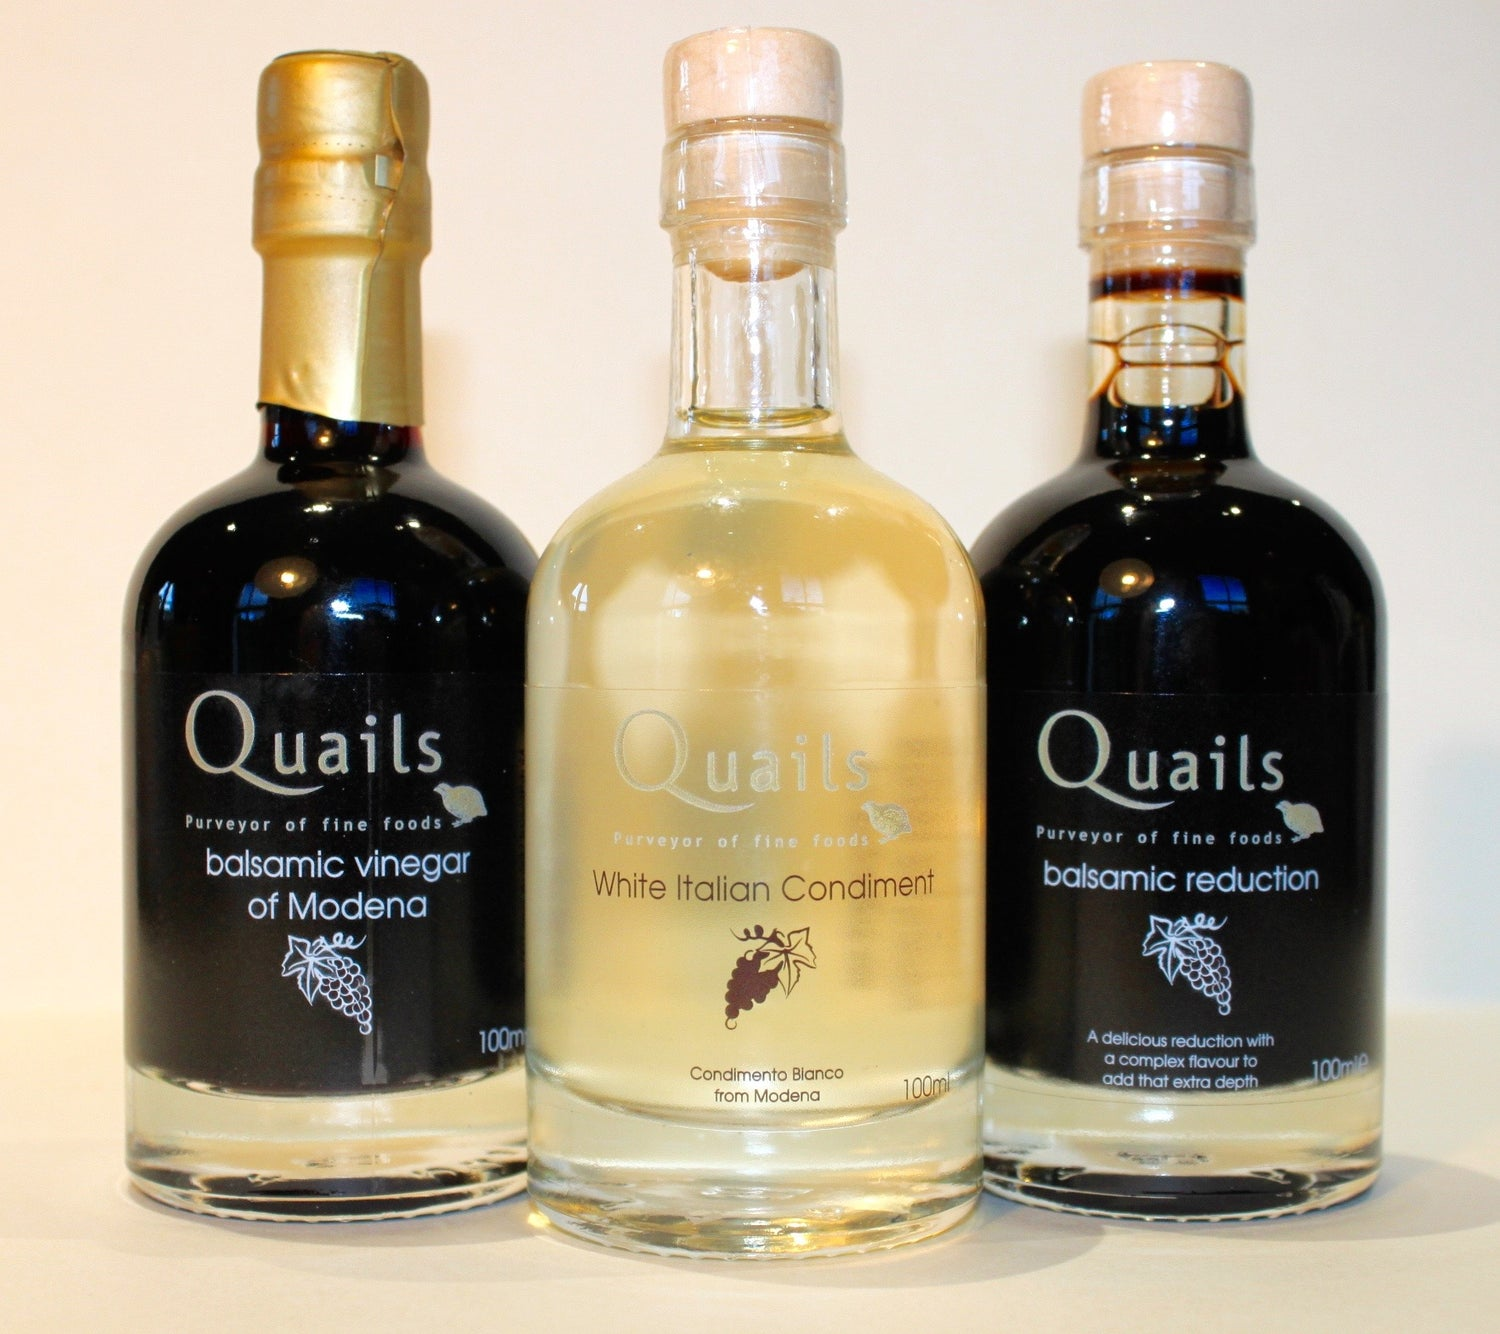 Quails White Italian Condiment